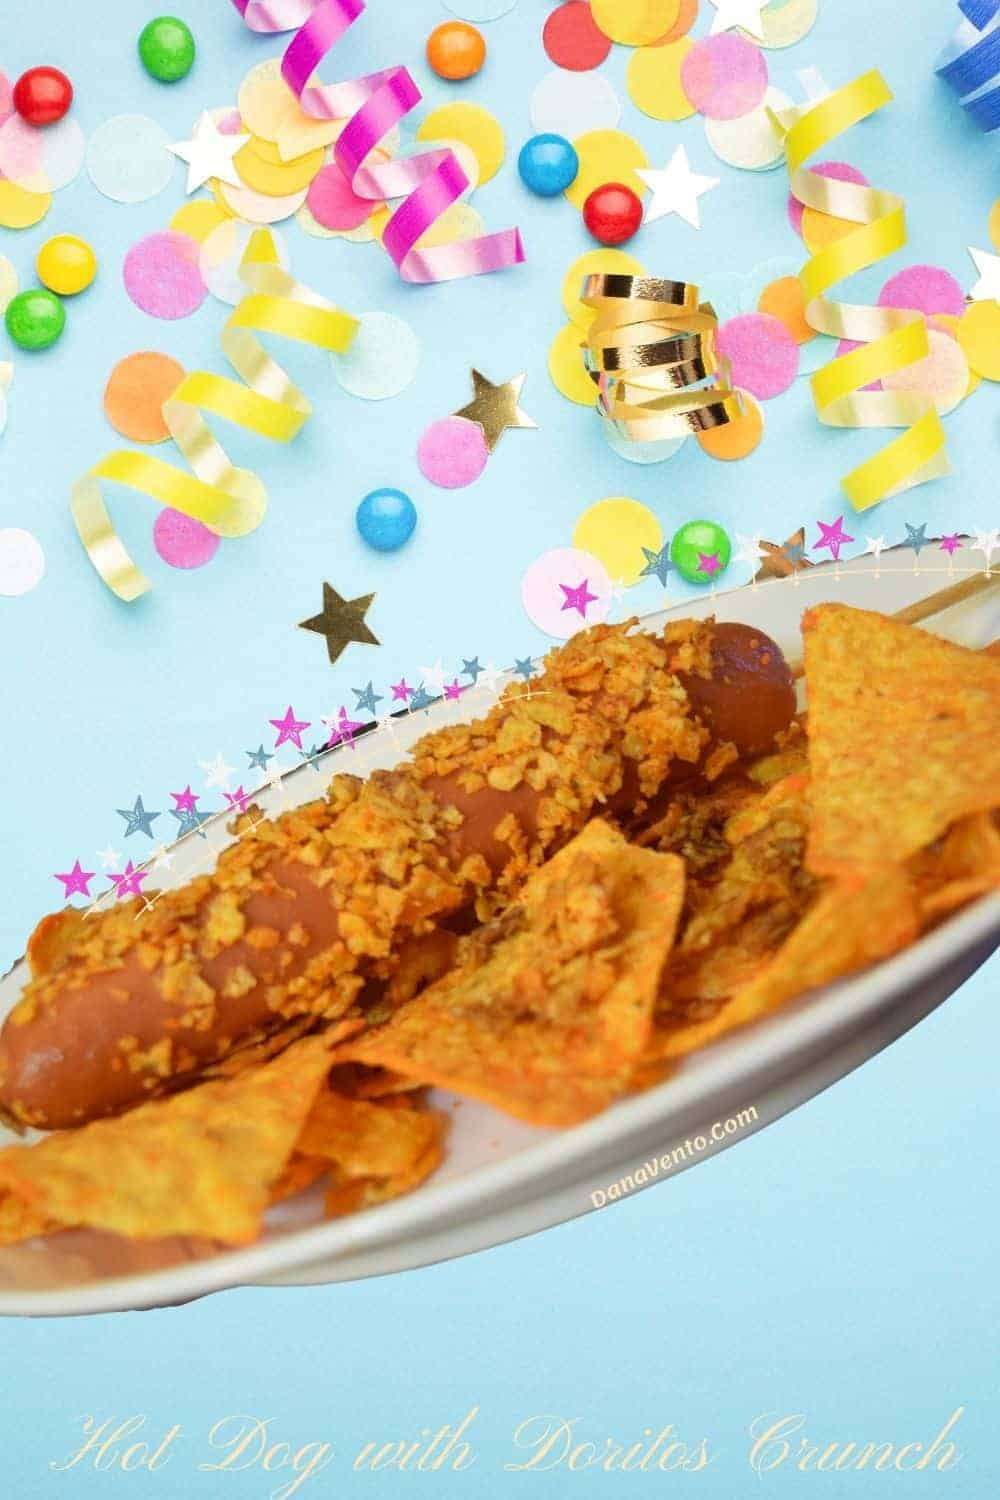 Hot Dog with Doritos Crunch on plate